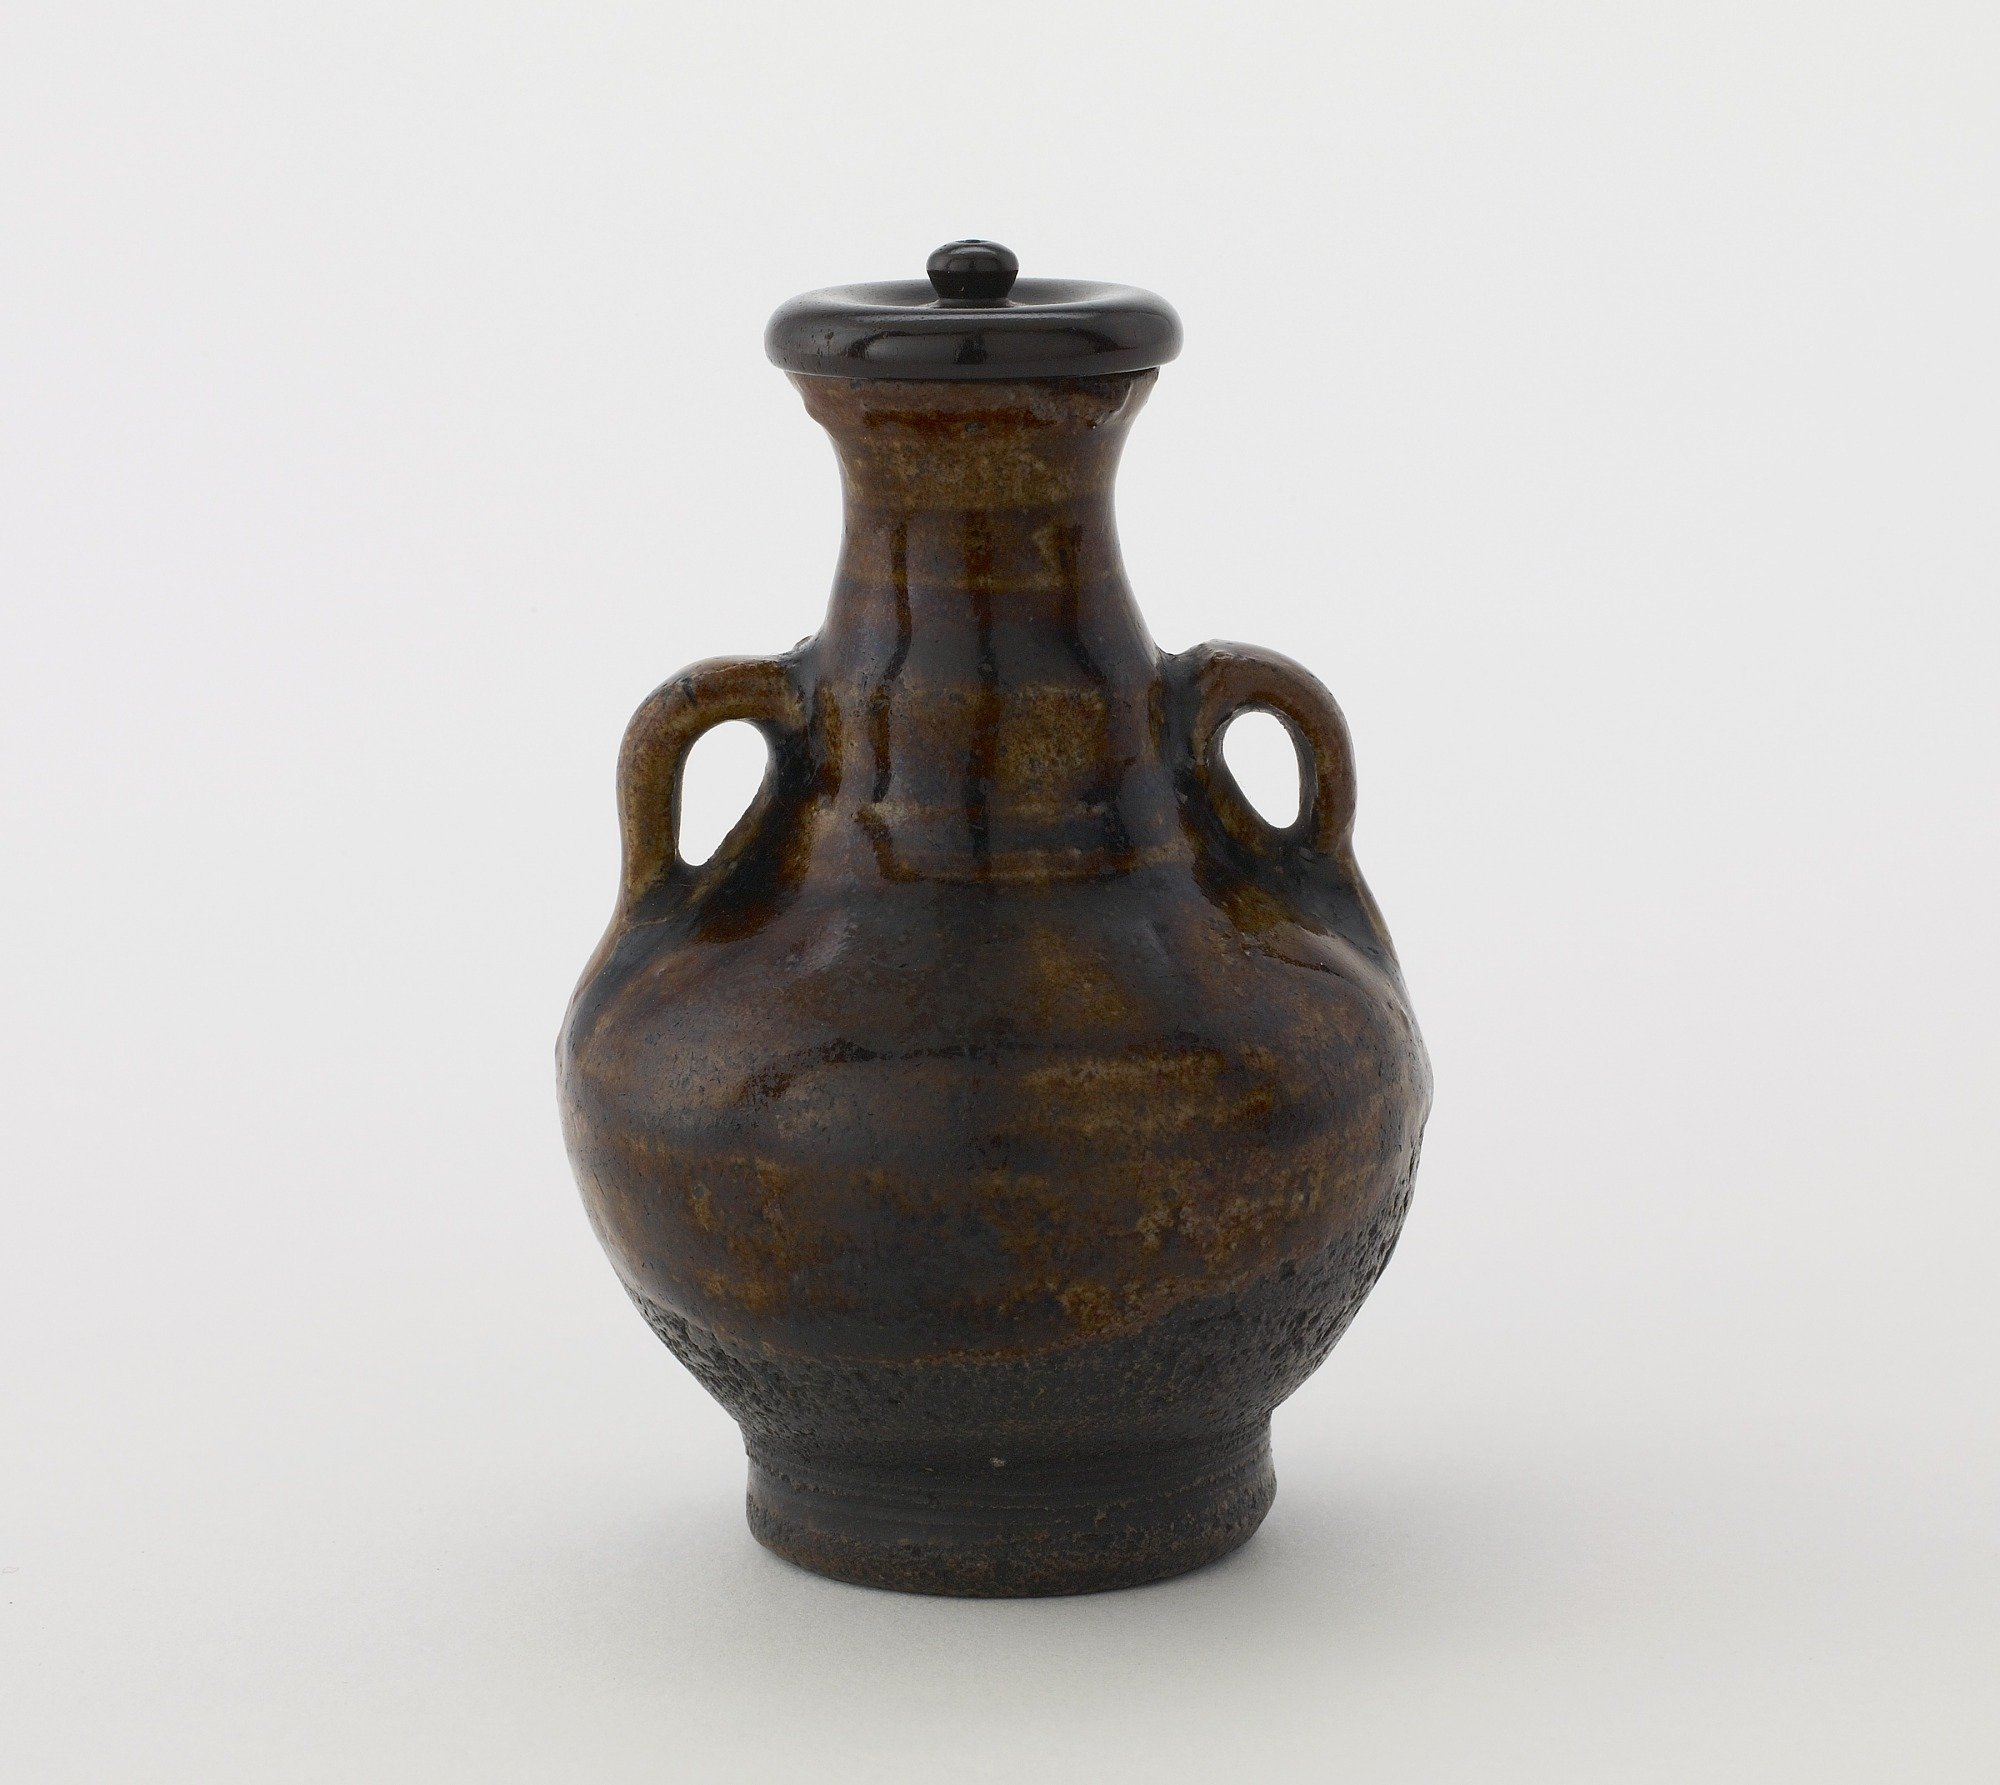 profile with lid: Bottle with two vertical ring hangles and lid